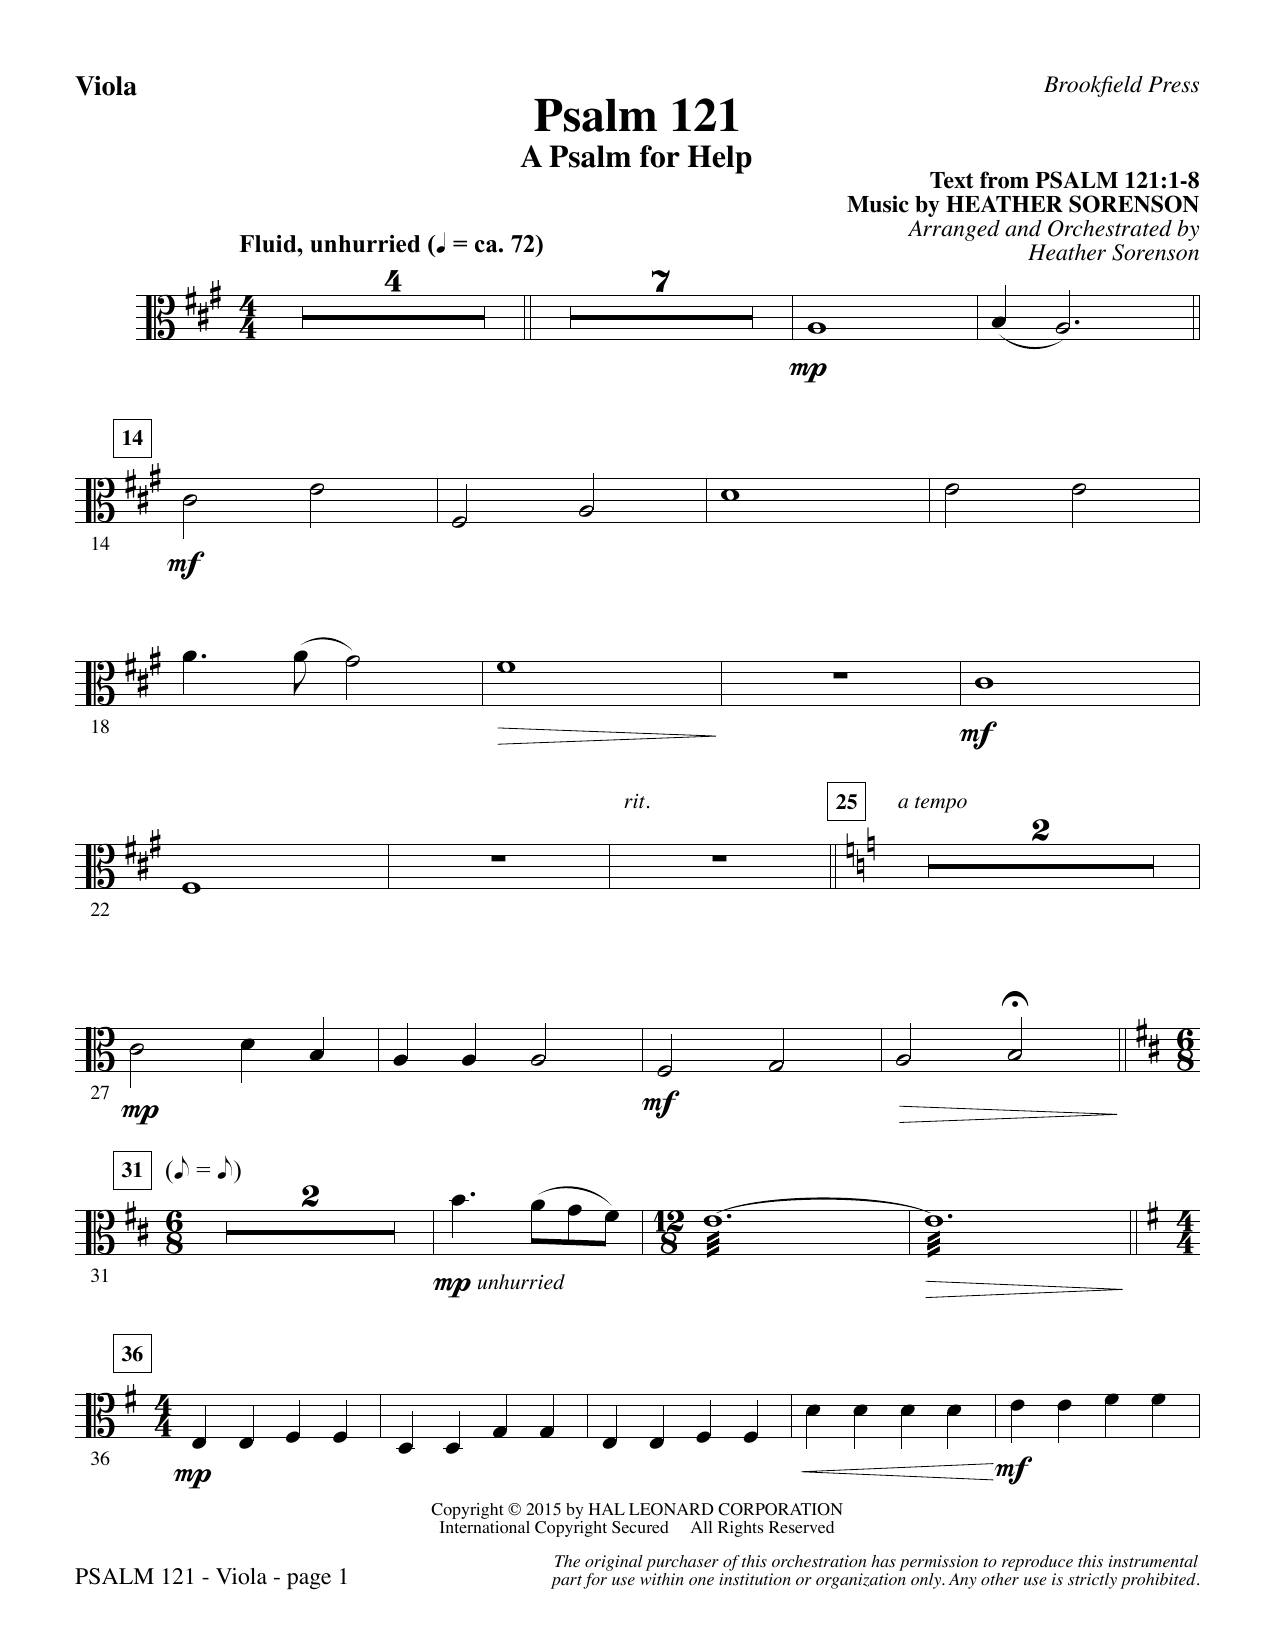 Psalm 121 (A Psalm For Help) - Viola sheet music